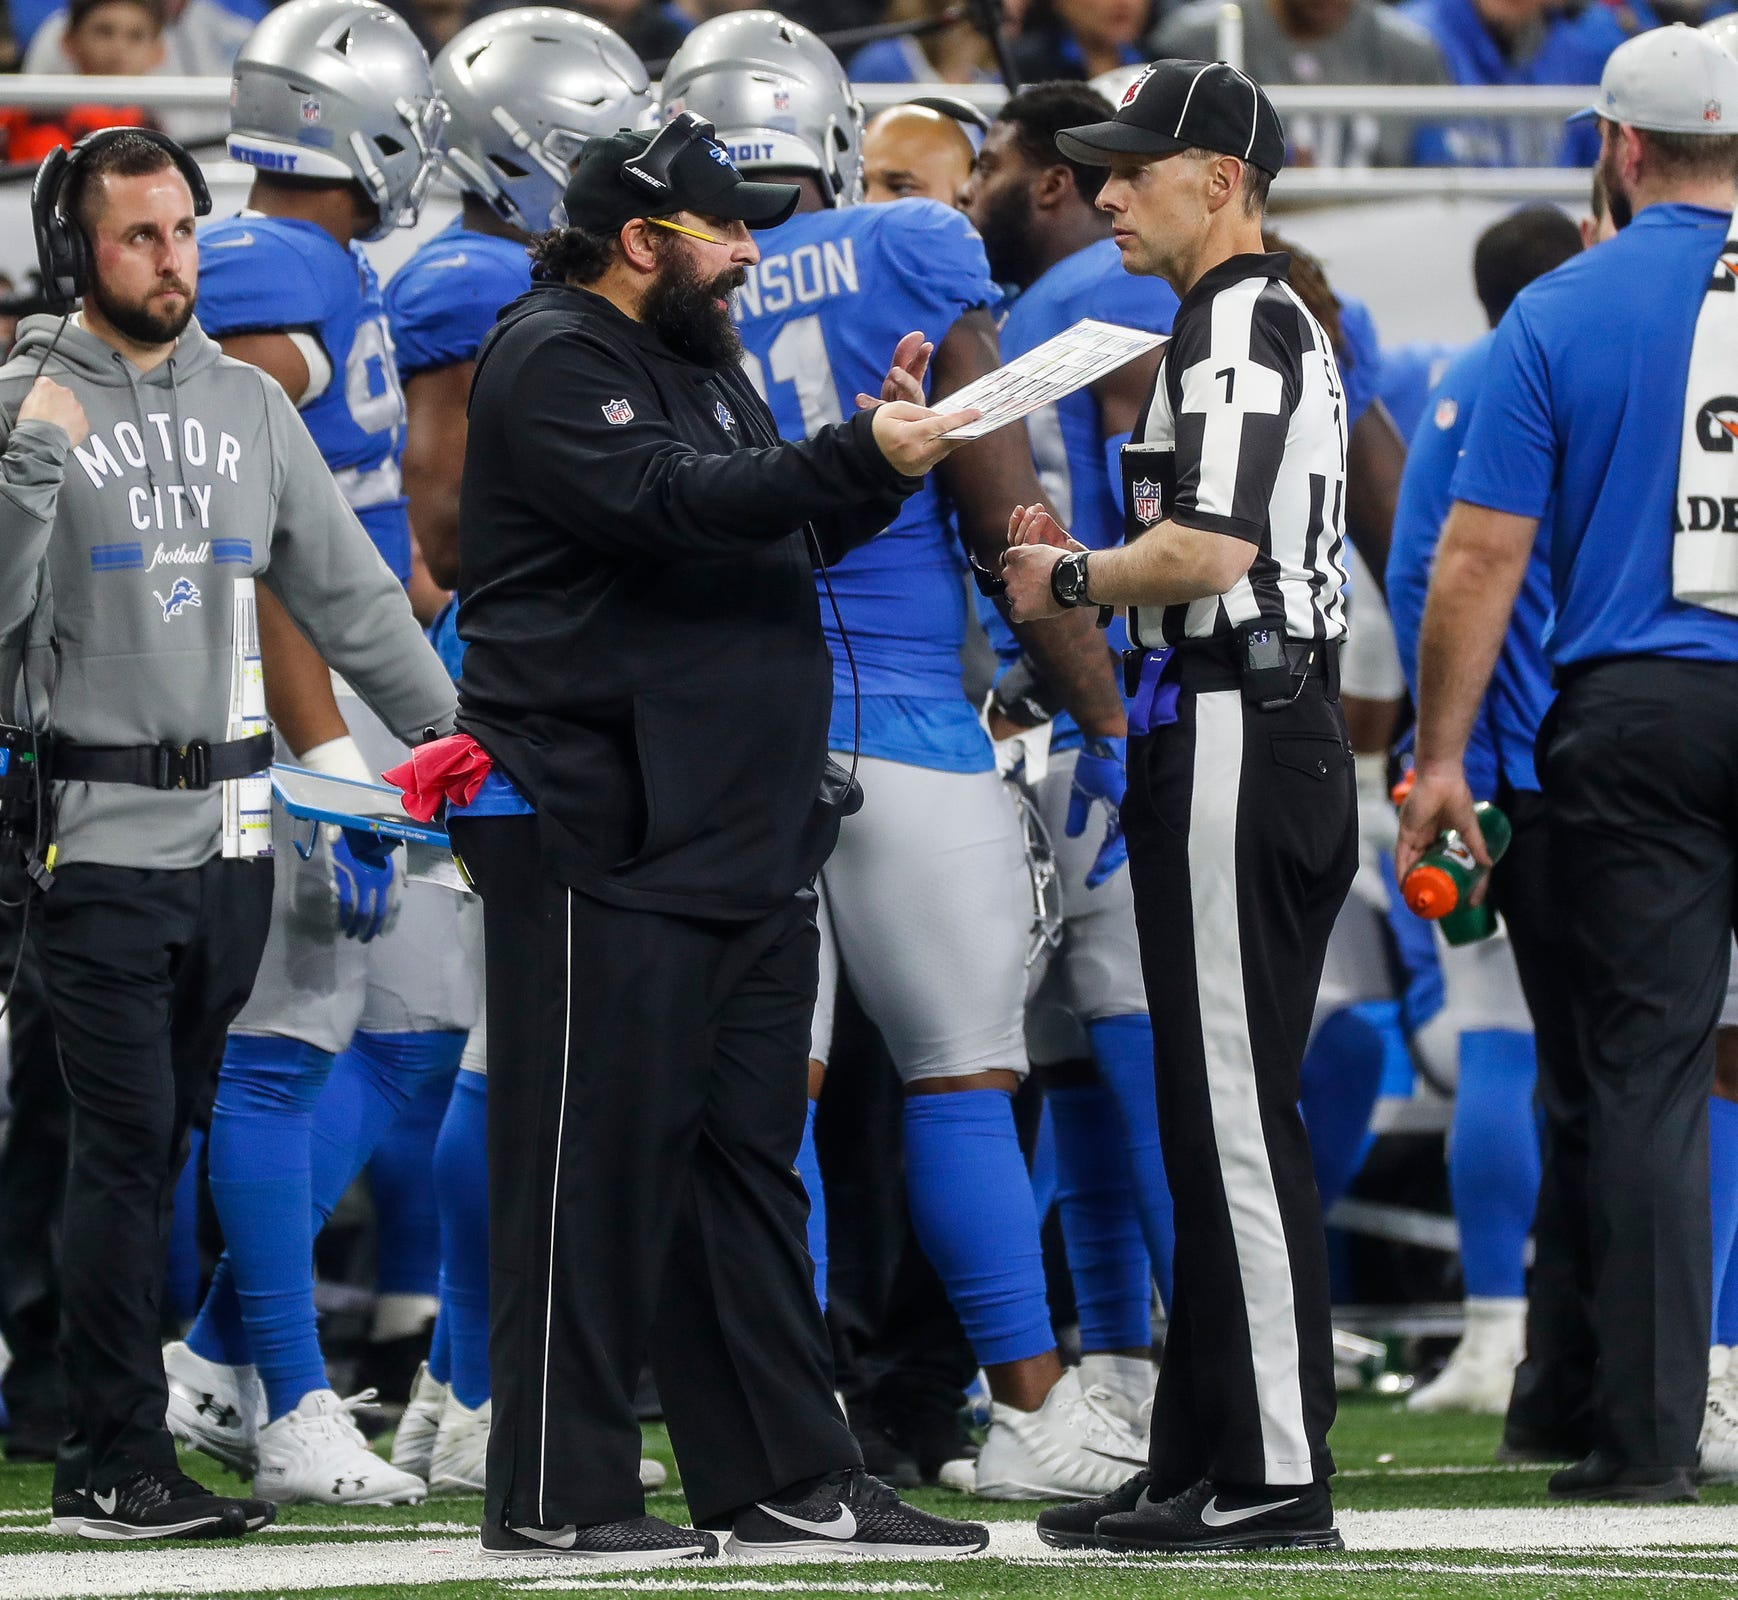 Lions head coach Matt Patricia talks to an official during the second half of the Lions' 23-16 loss to the Bears on Thursday, Nov. 22, 2018, at Ford Field.